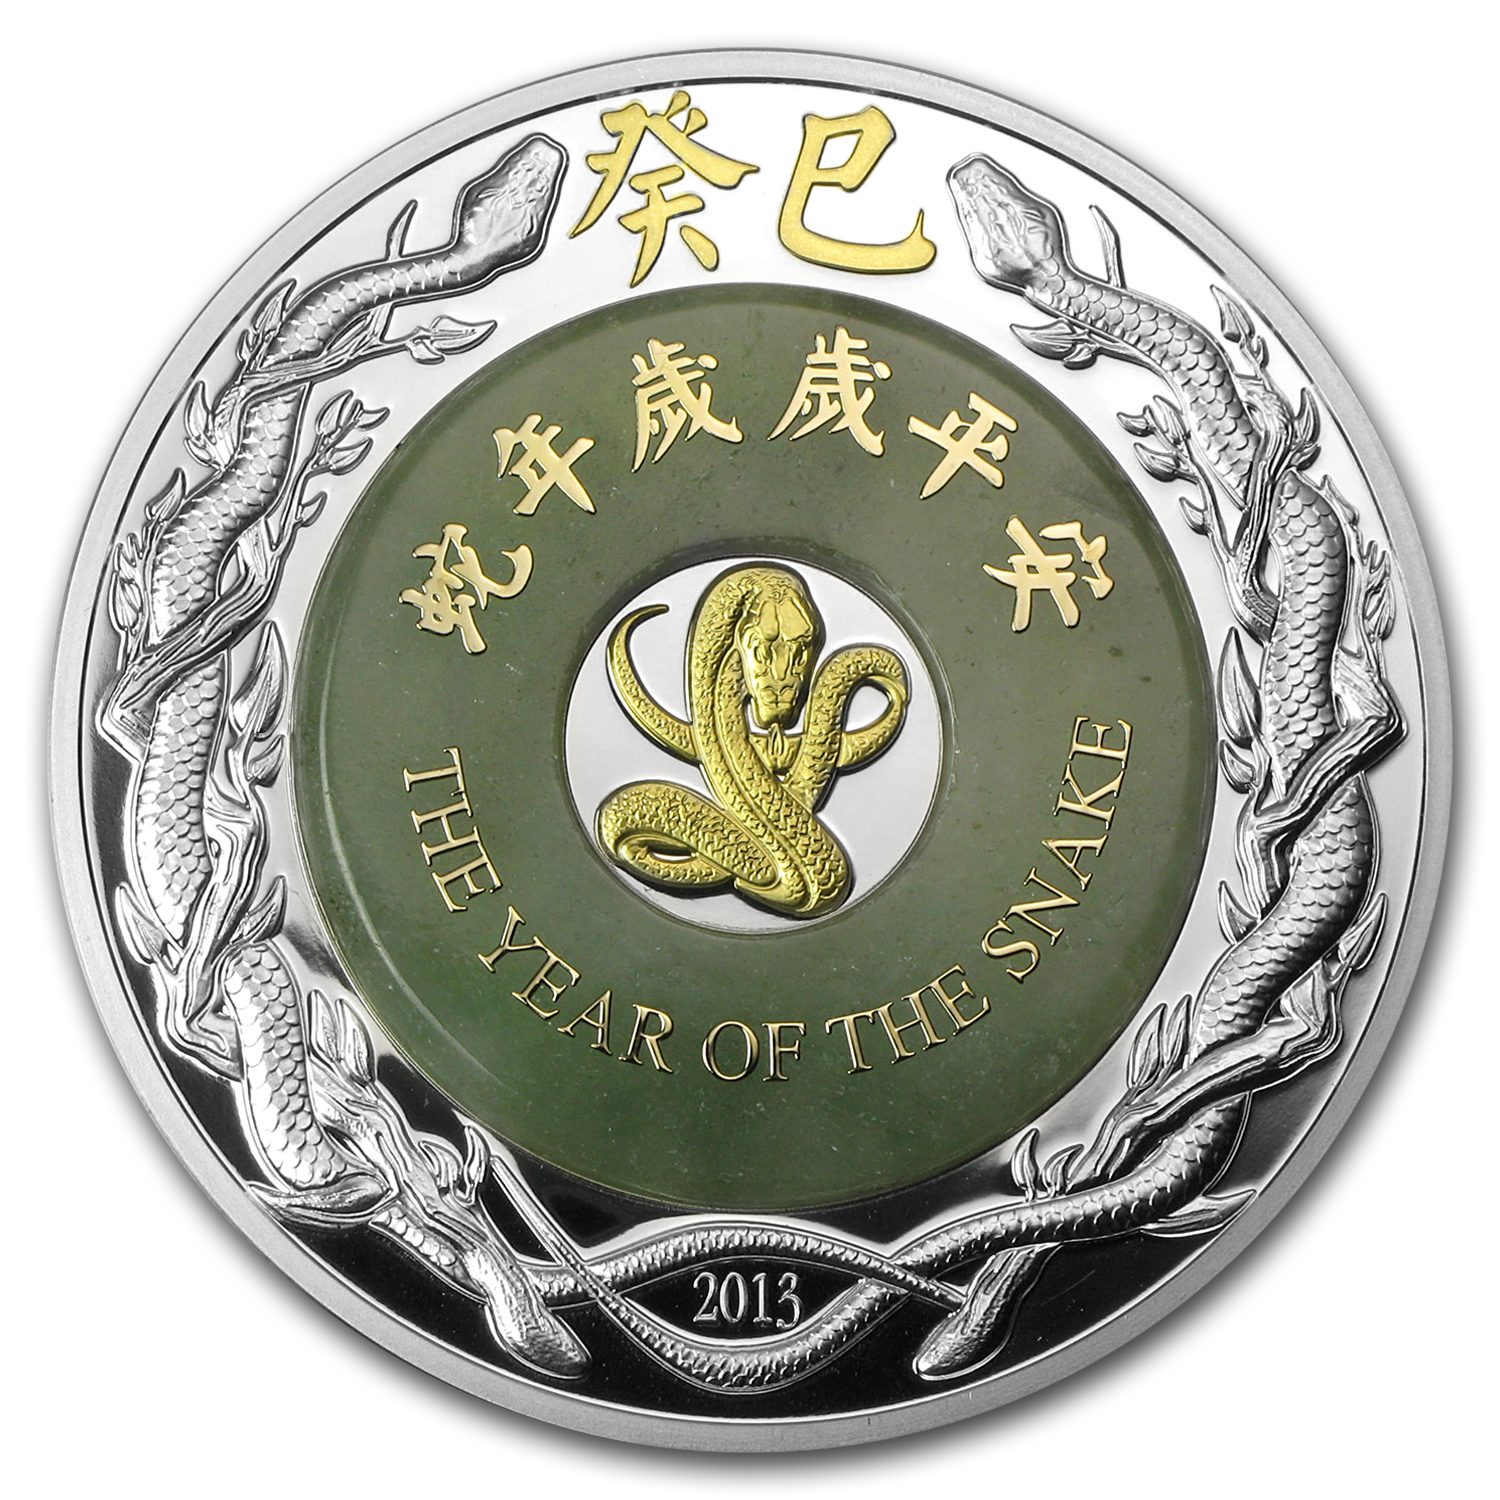 2013 Laos 2 Oz Silver Amp Jade Year Of The Snake Proof